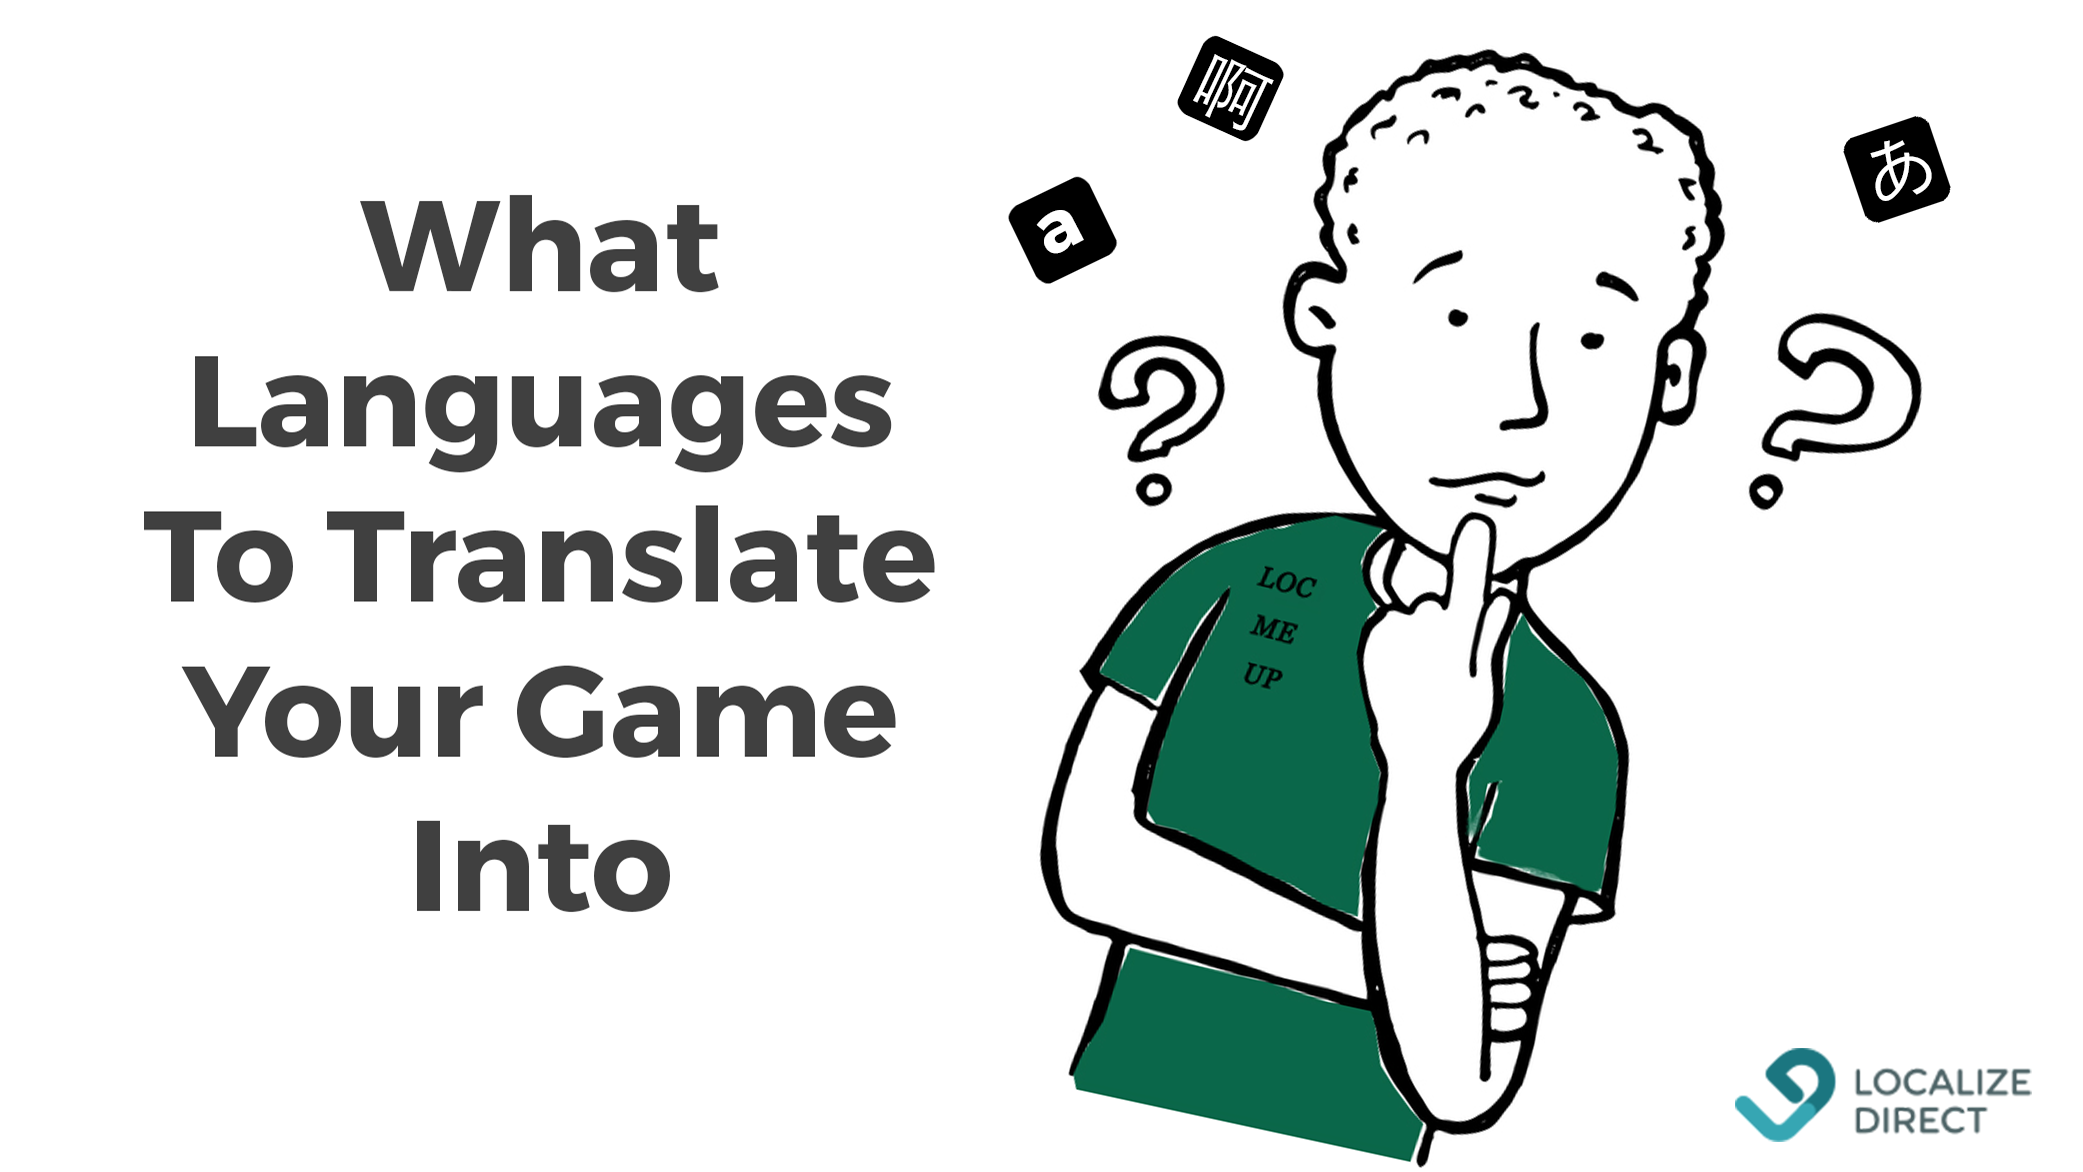 What Languages To Translate Your Game Into In 2019 (Trends